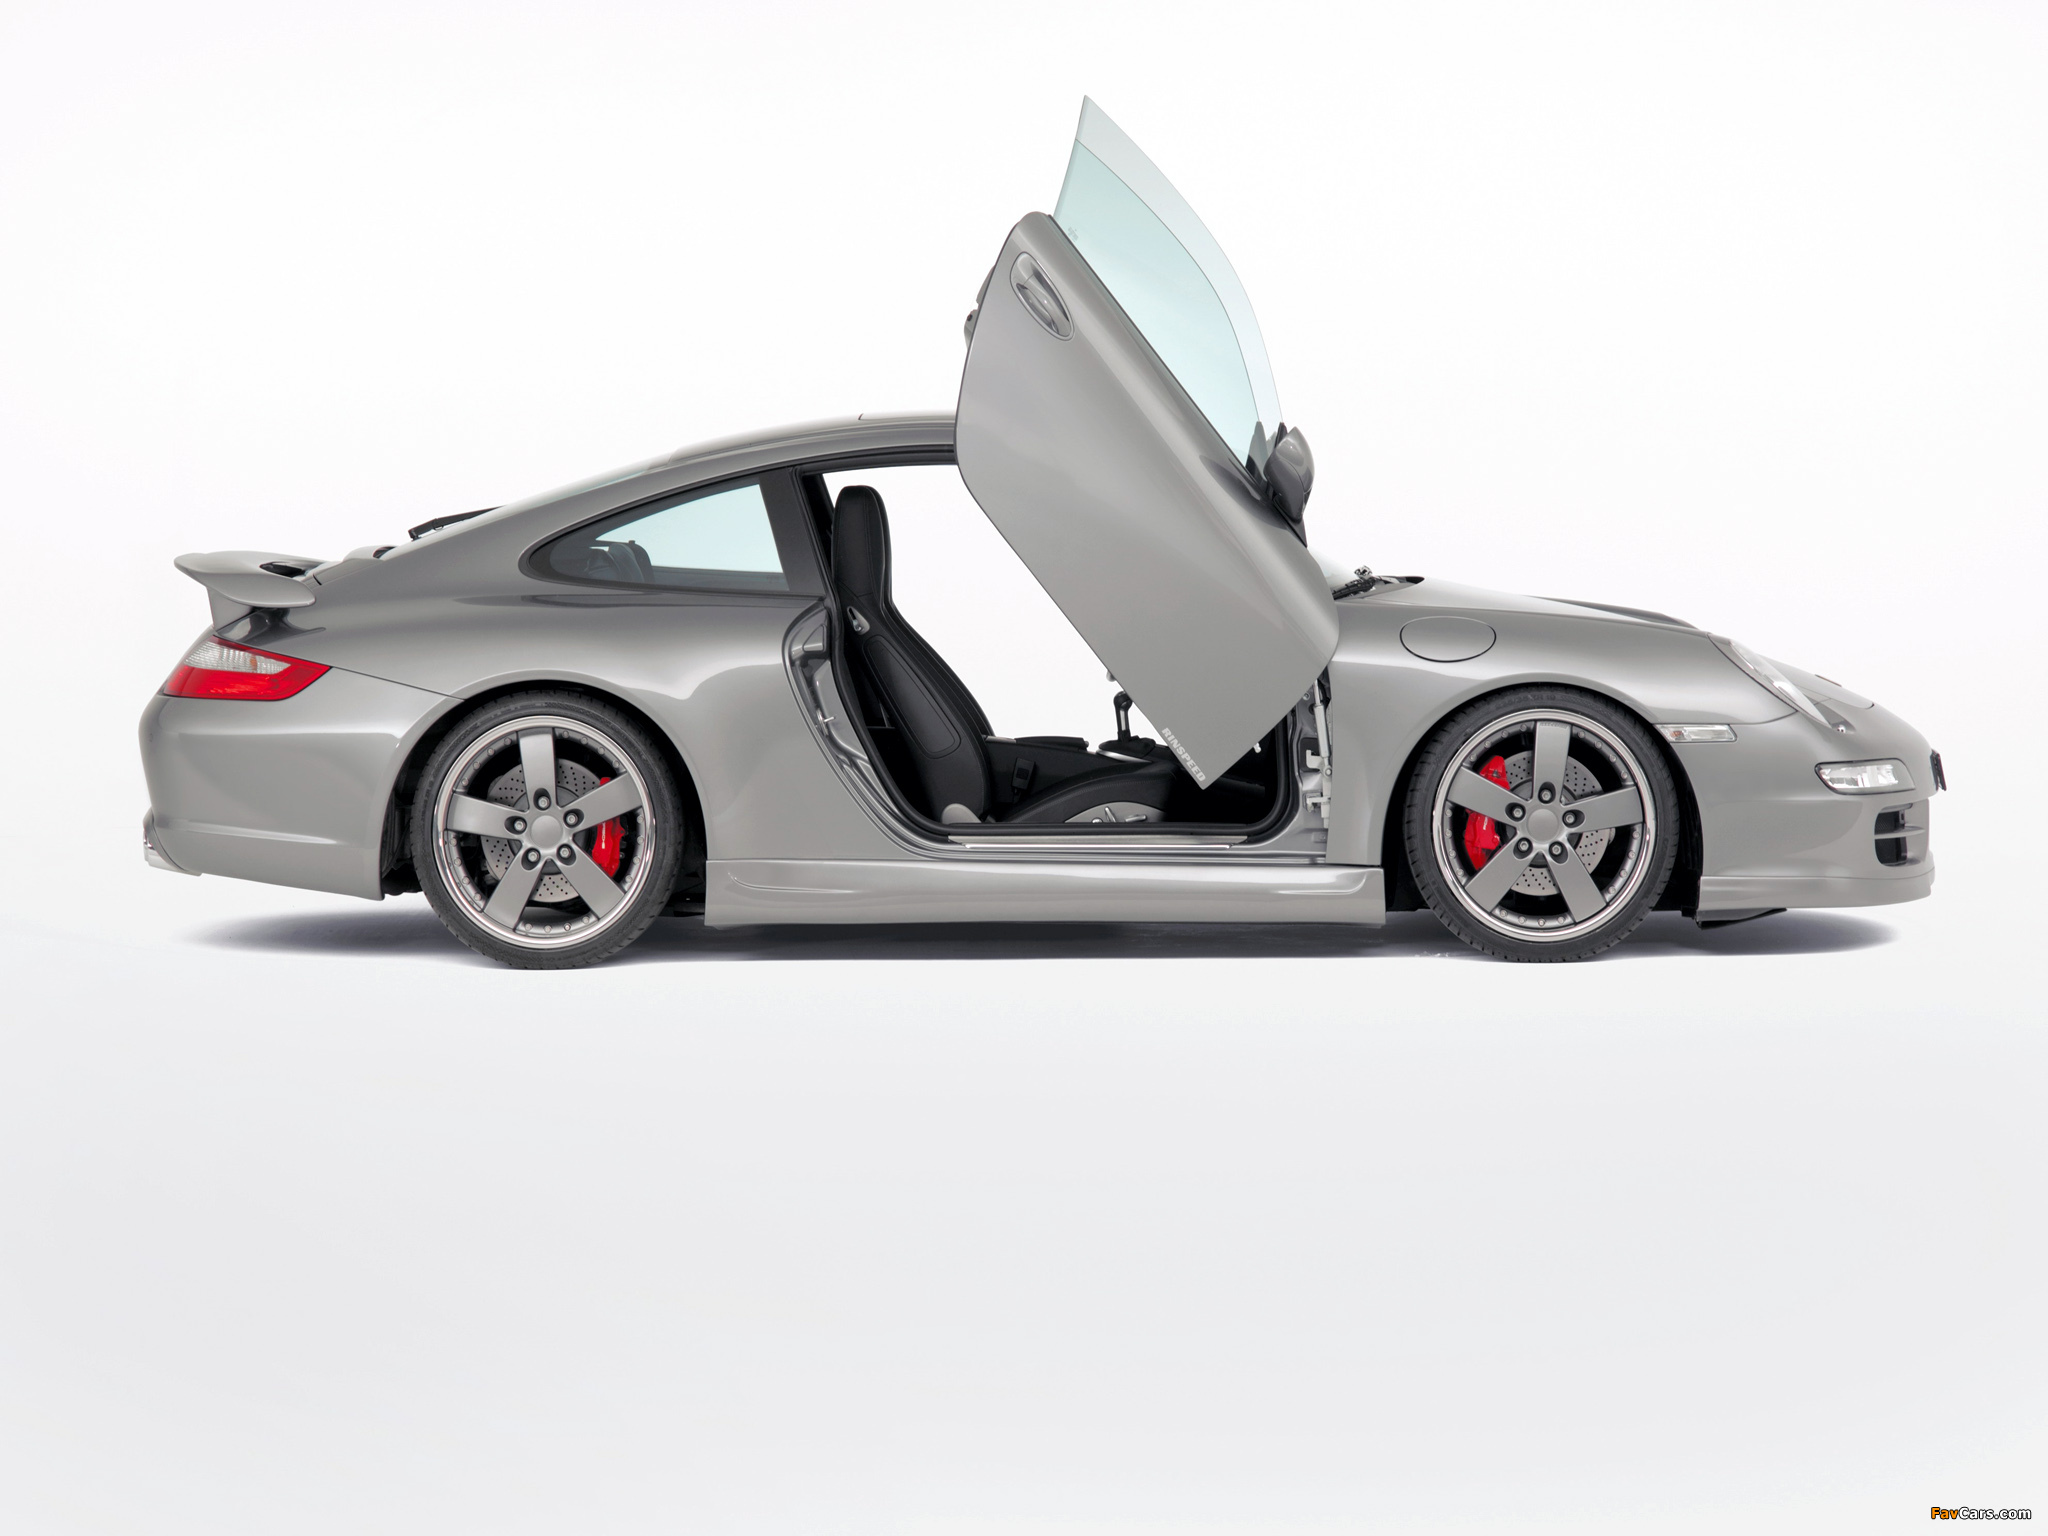 Rinspeed Porsche 911 Carrera Coupe (997) pictures (2048 x 1536)